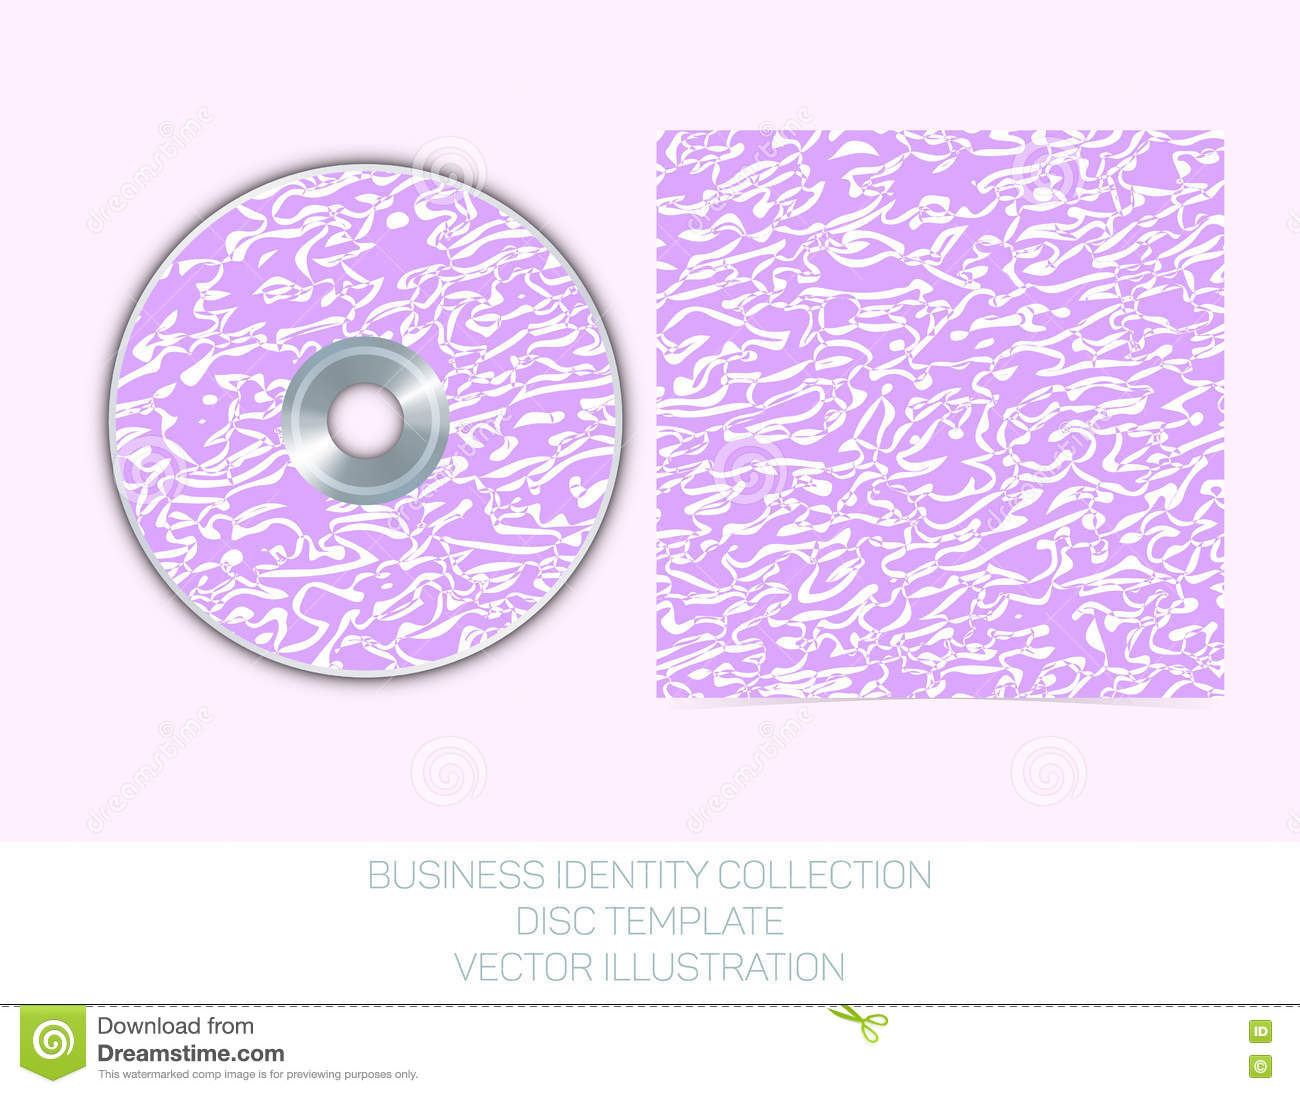 business identity collection mauve orchid violet chaos cd or